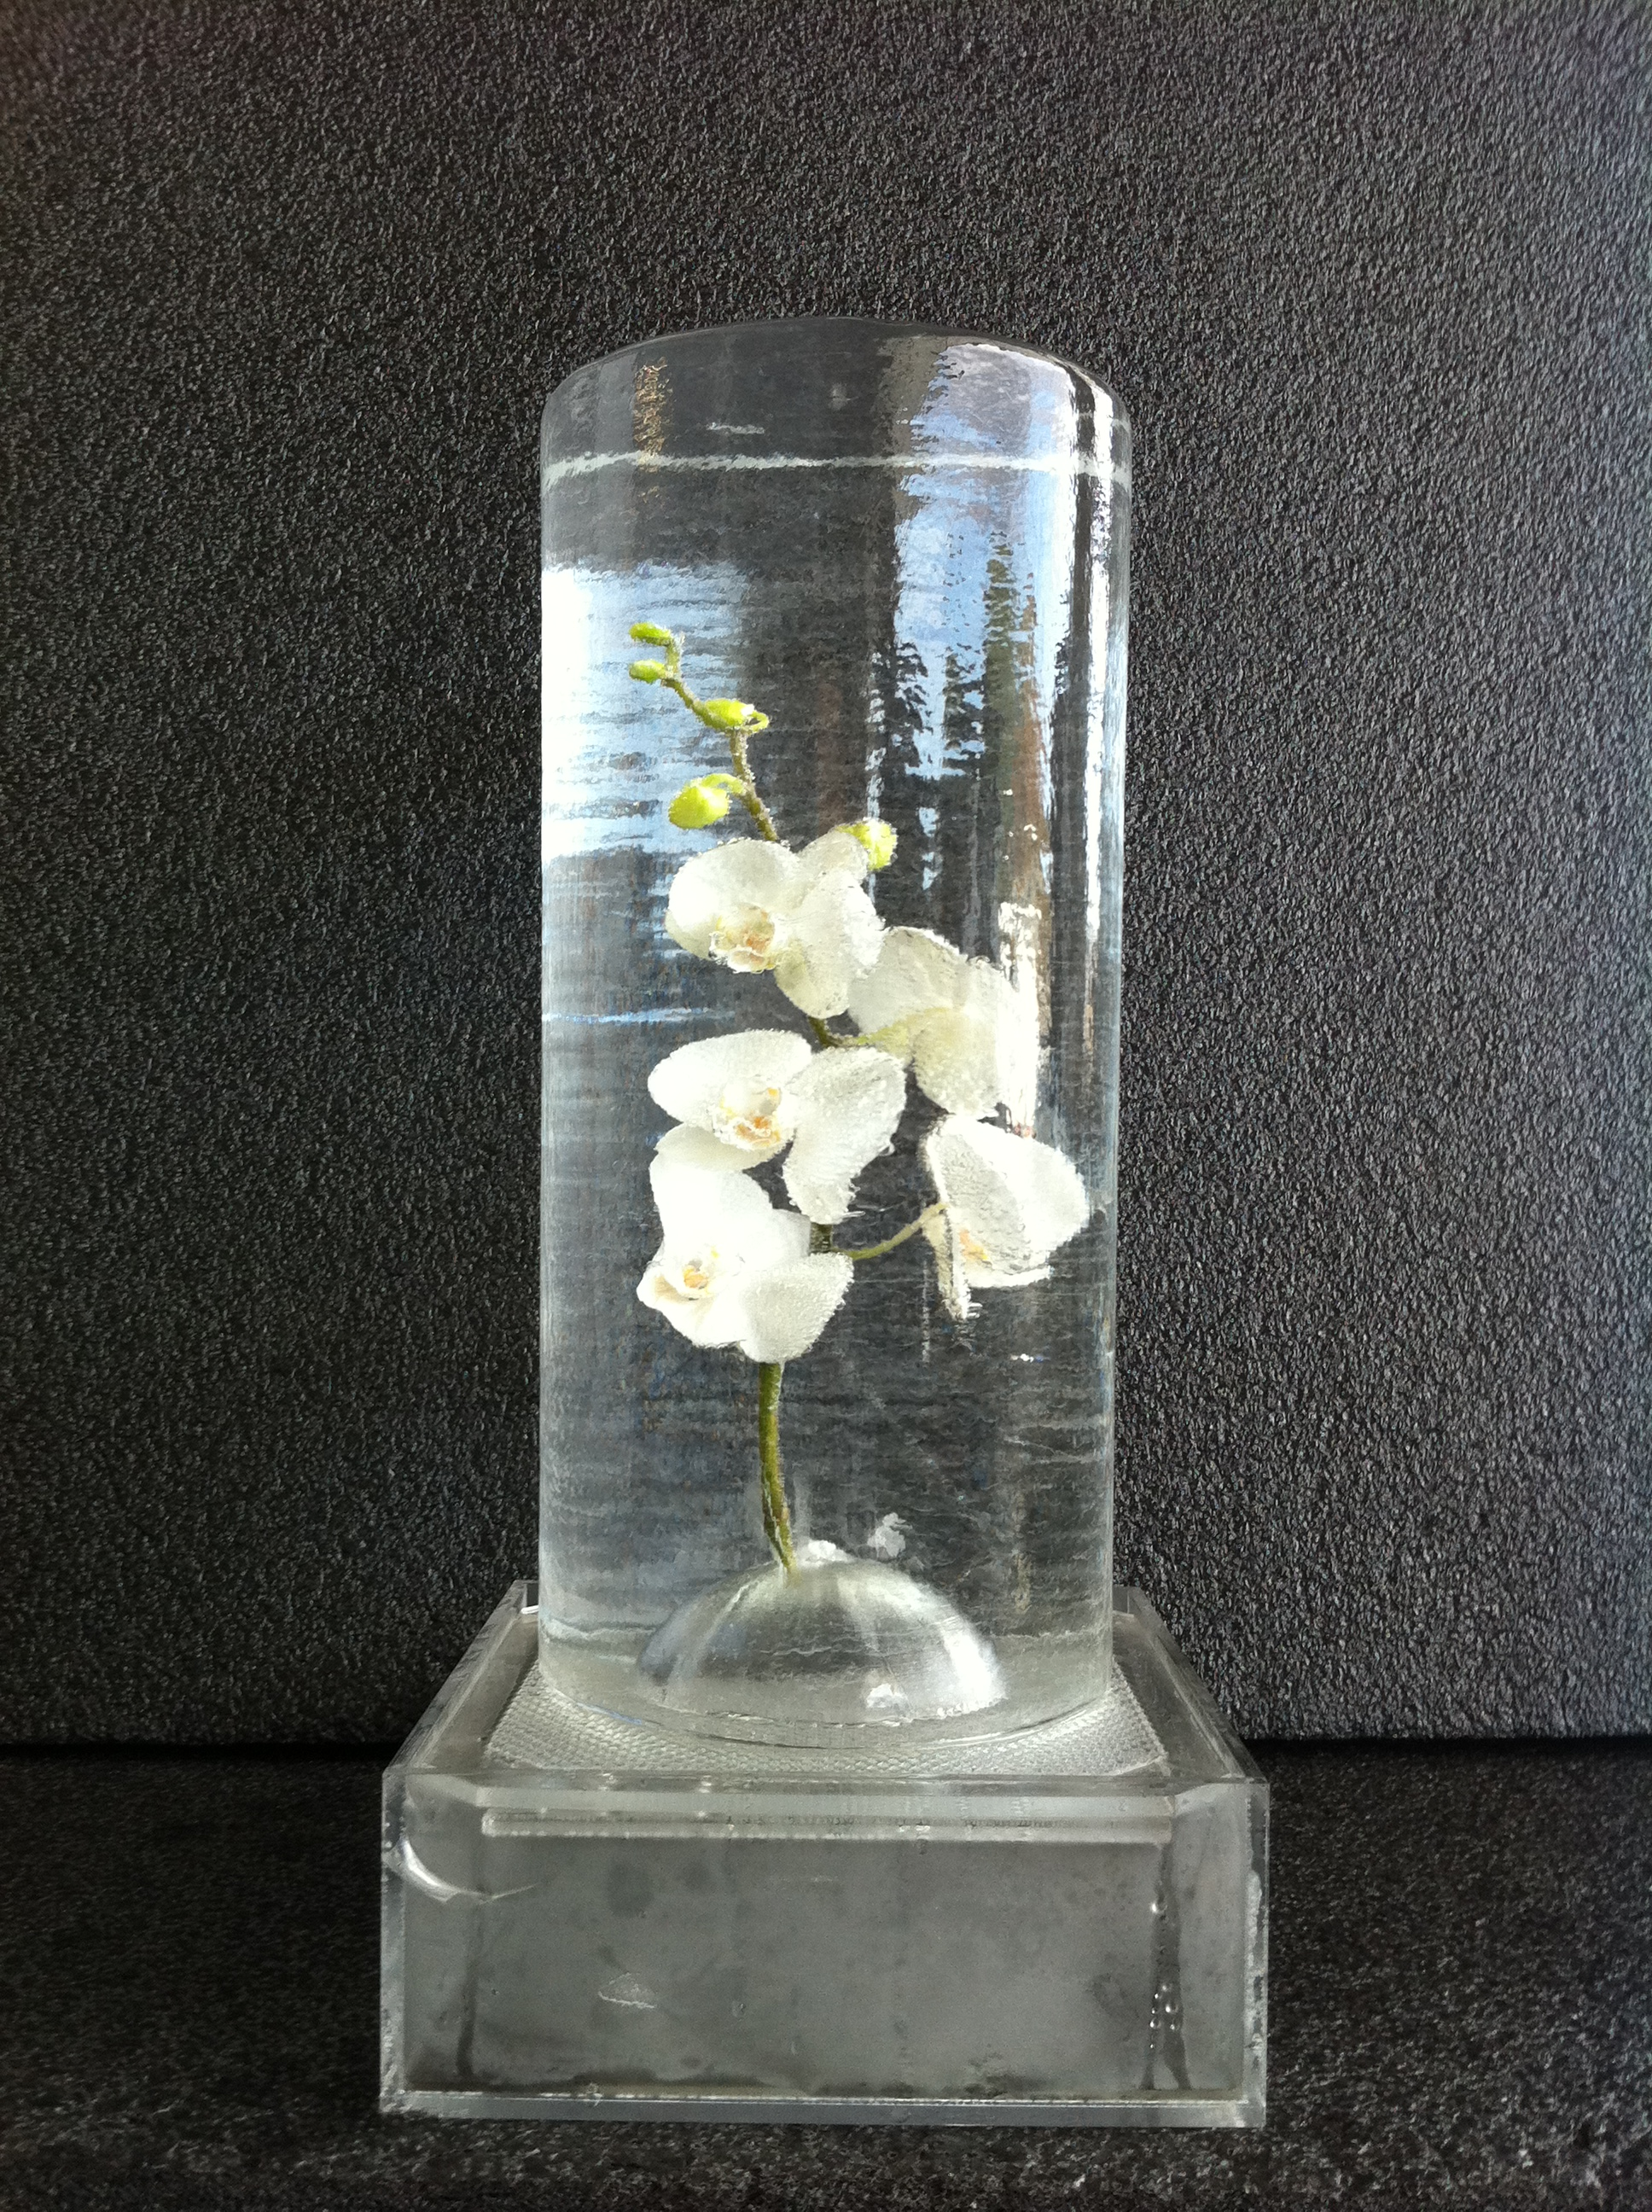 Orchid-Frozen In-Table Centre